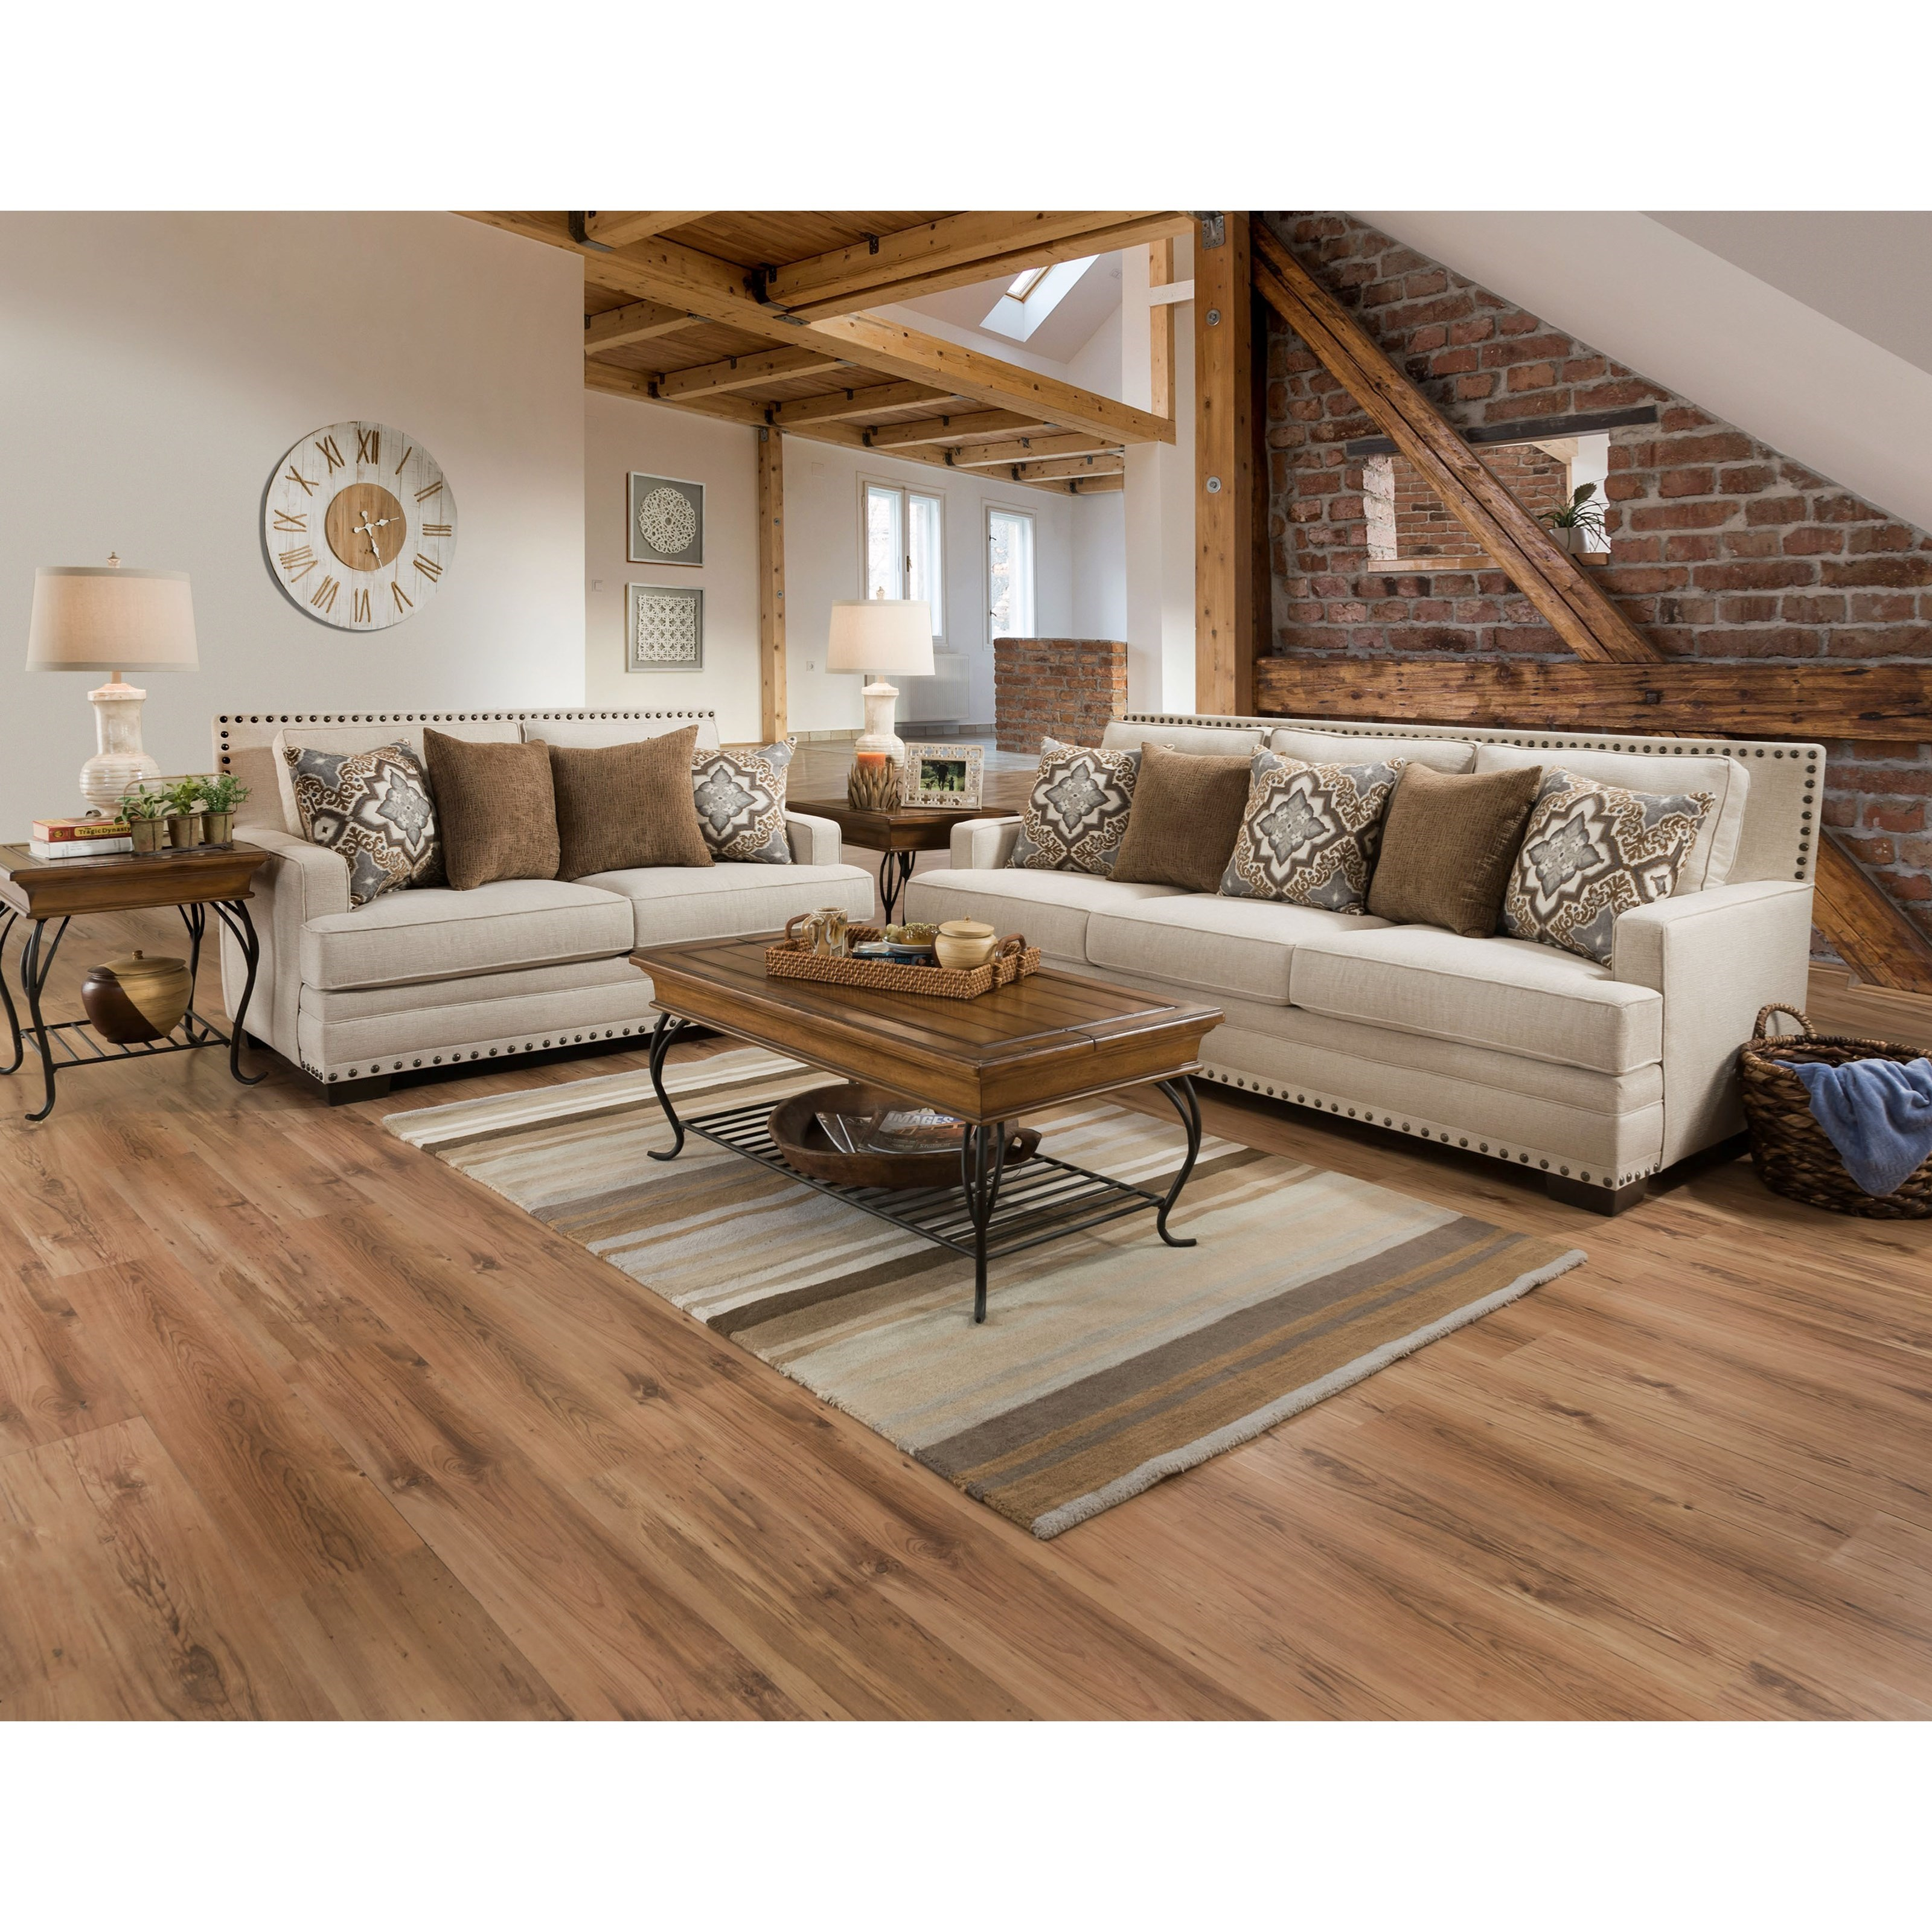 34B0 Stationary Living Room Group by Corinthian at Story & Lee Furniture